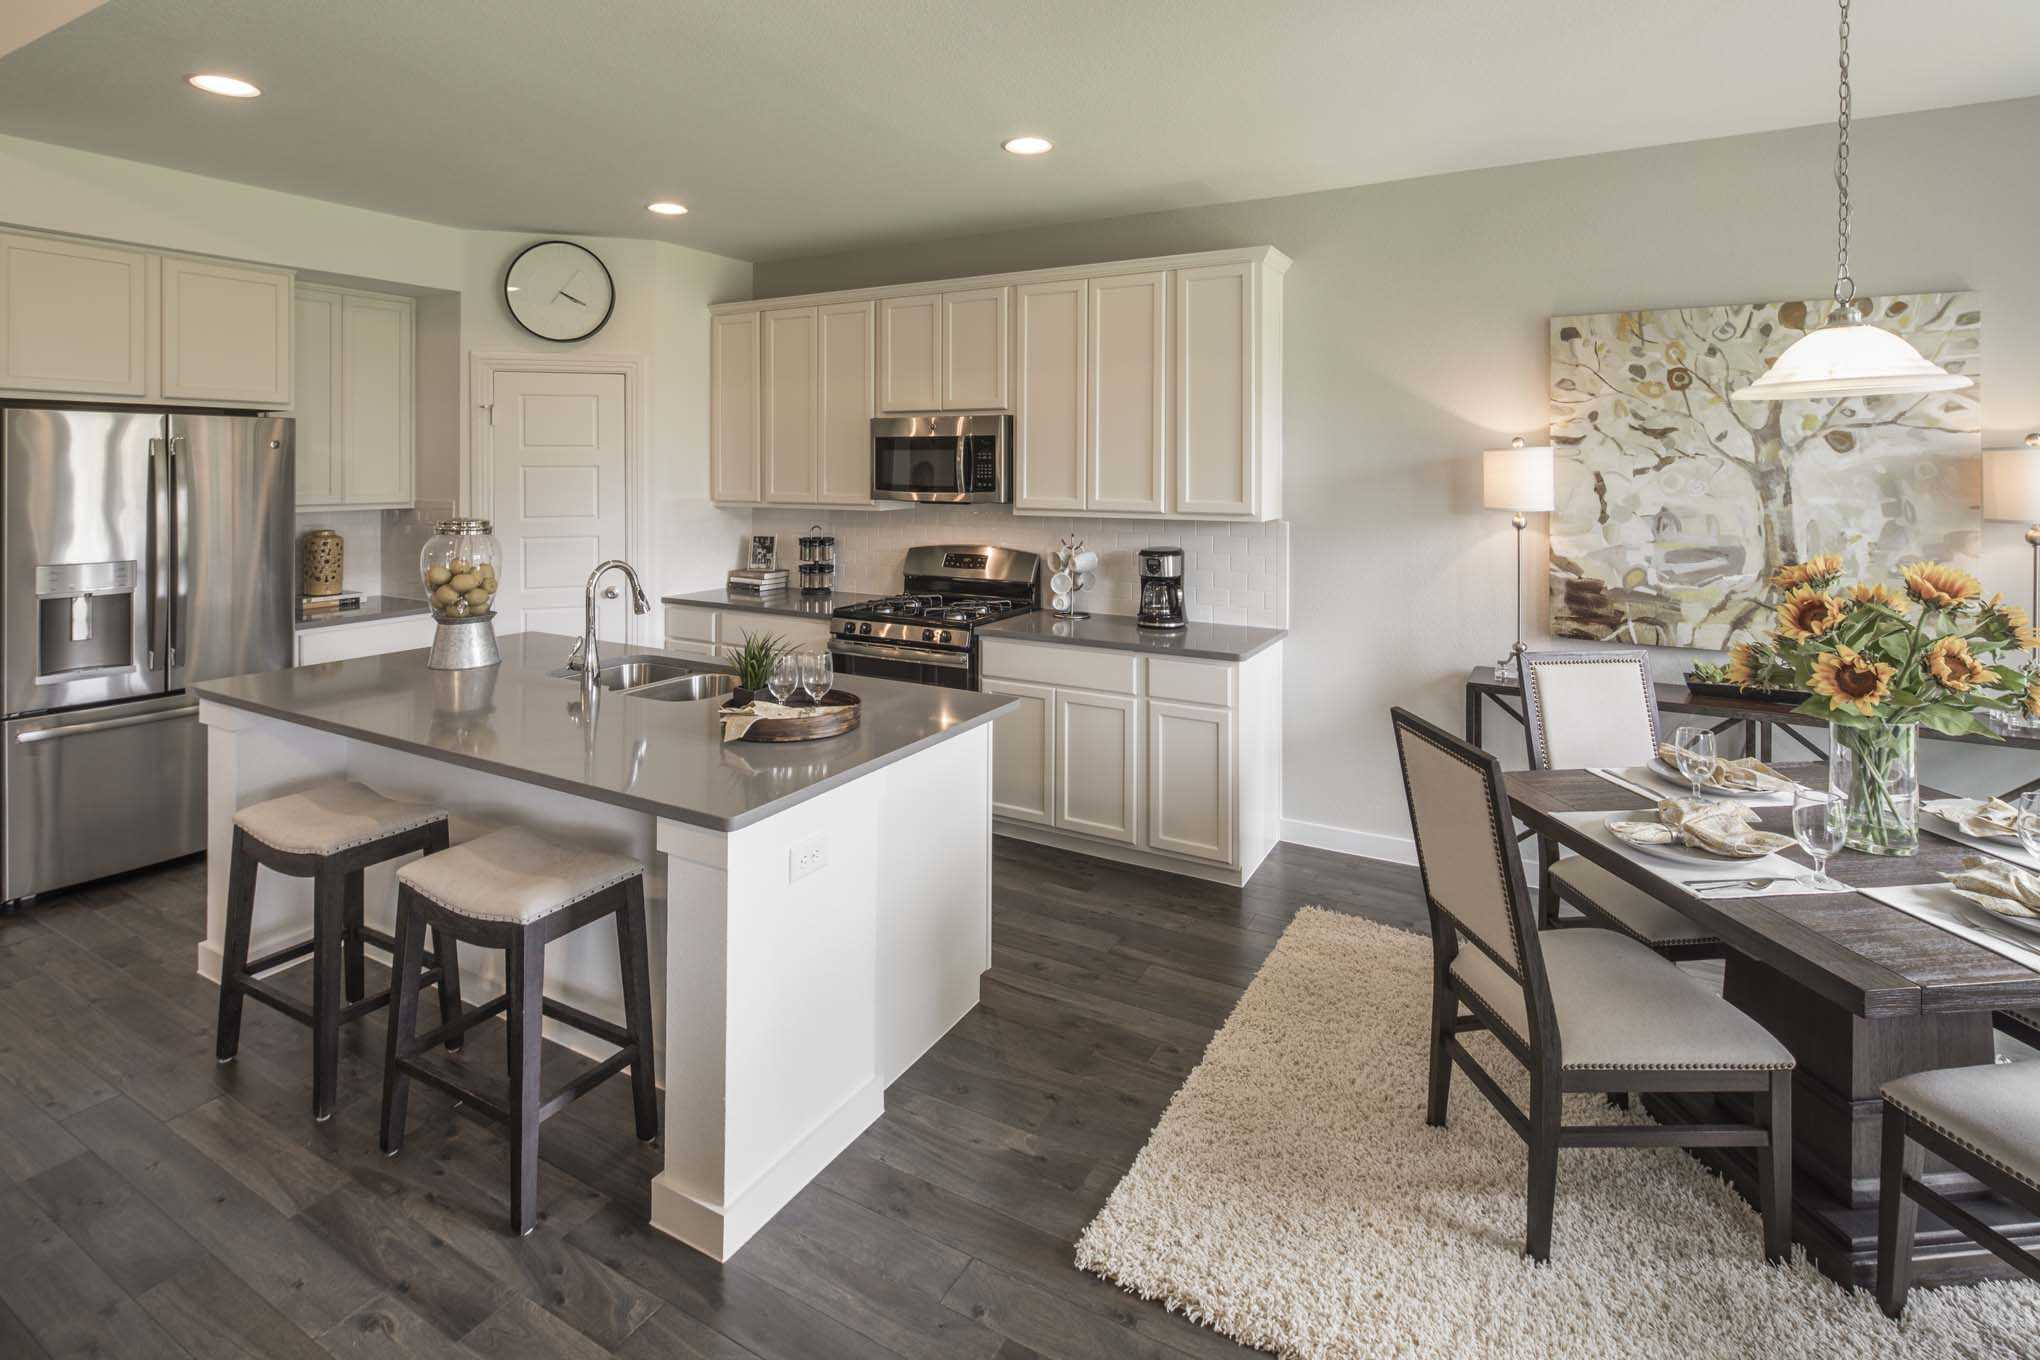 Kitchen featured in the Plan Westbury By Highland Homes in Houston, TX